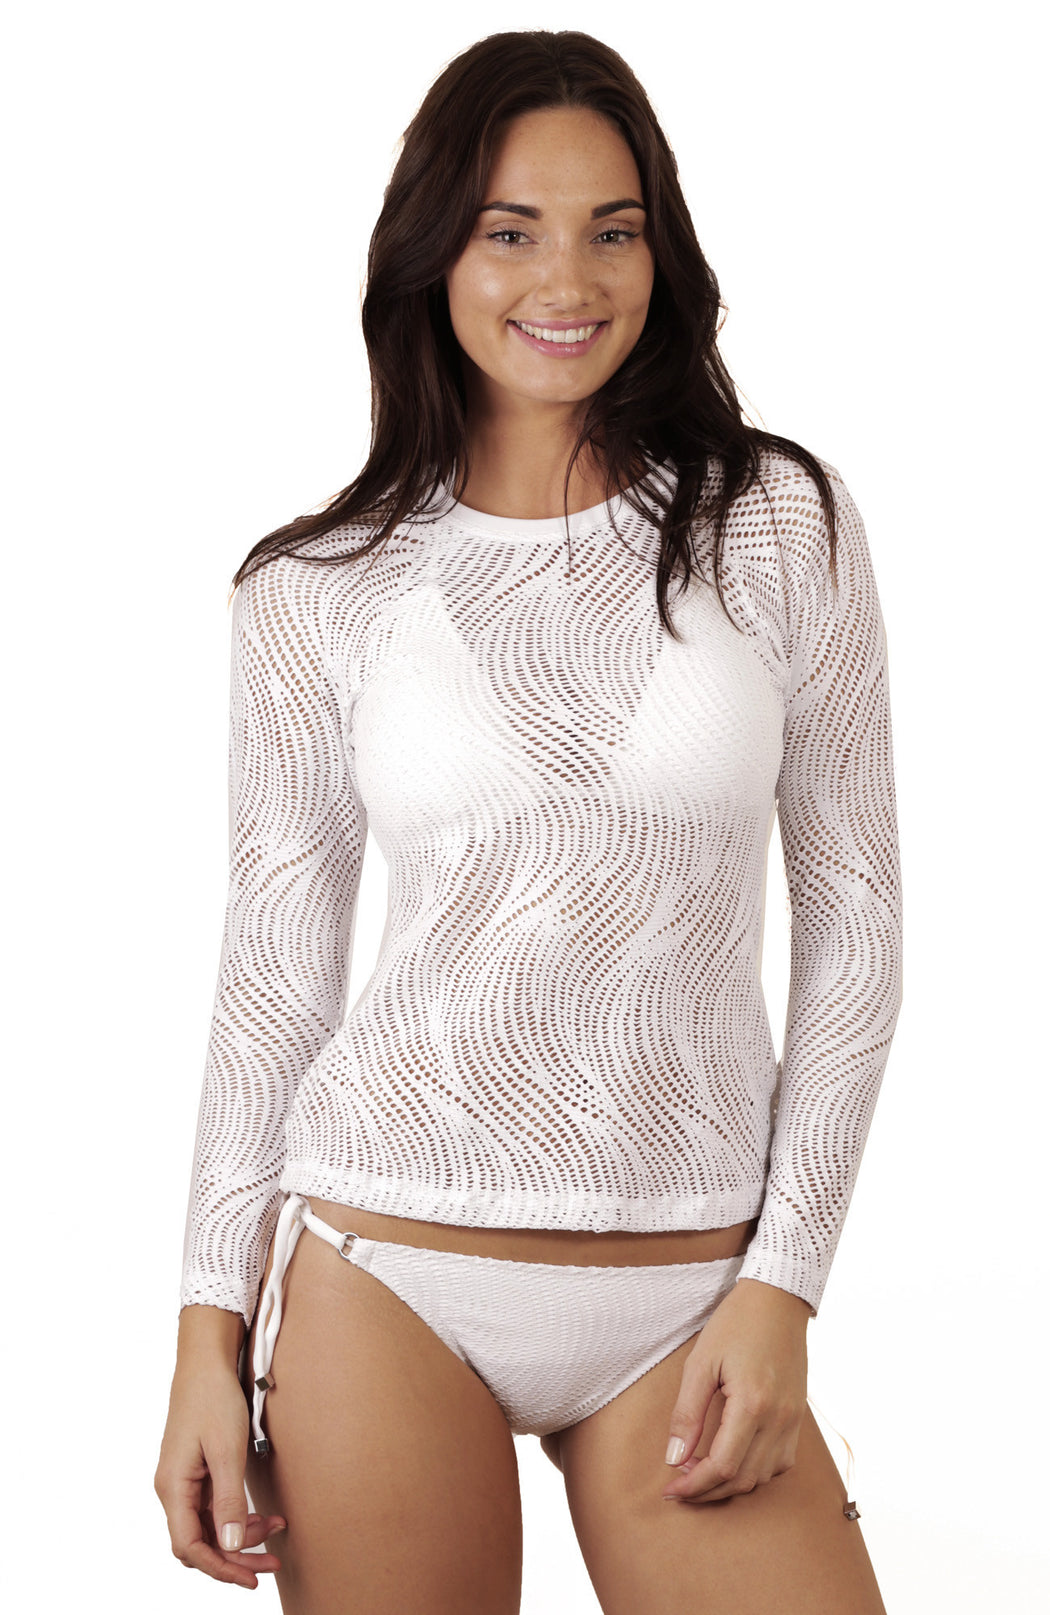 A light lace wetshirt cover-up with active styling from Finch Swim